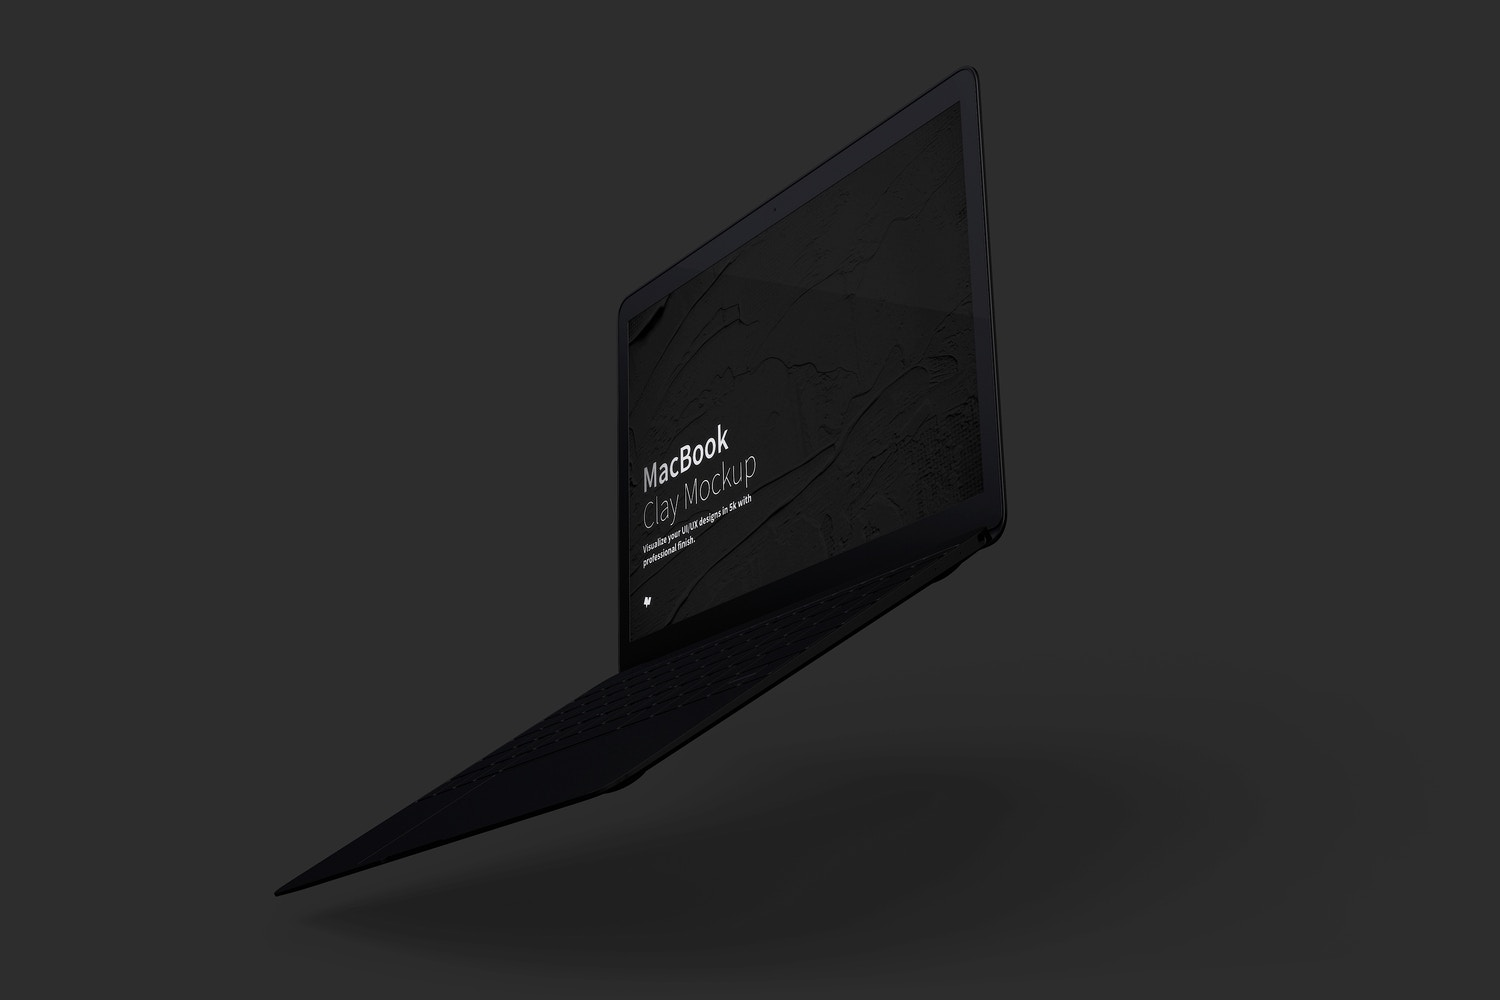 Clay MacBook Mockup, Floating Right View (5) by Original Mockups on Original Mockups